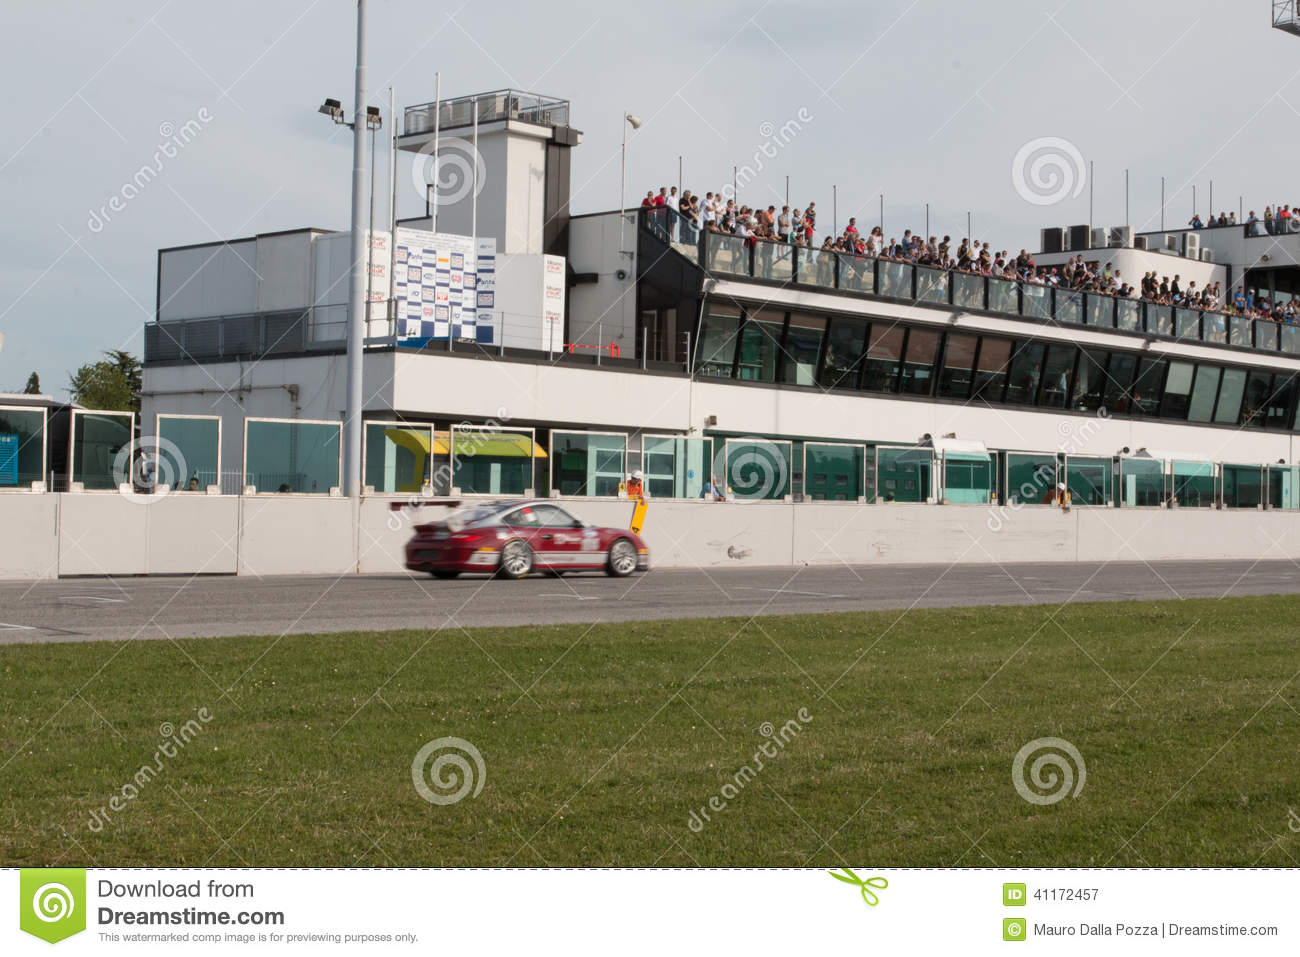 Porsche 997 Cup Gtc Race Car Editorial Image